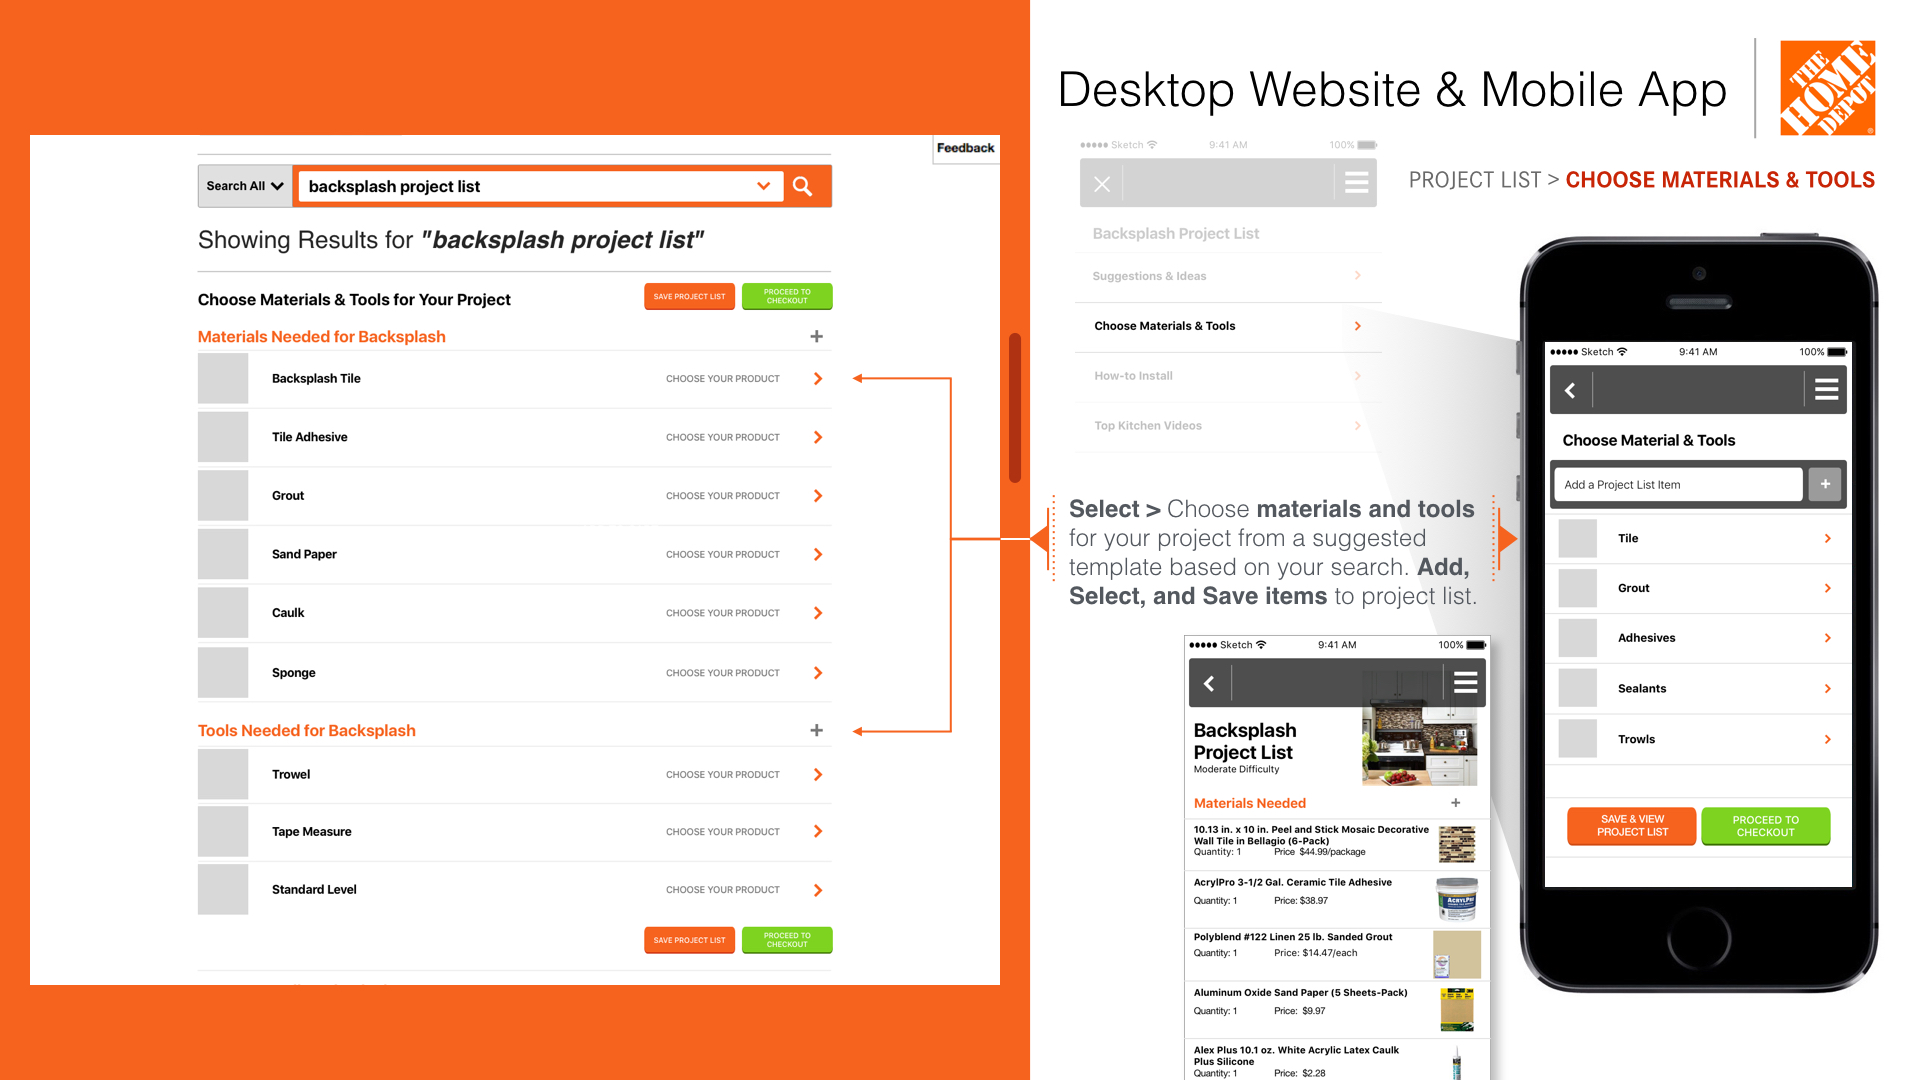 Home Depot U2013 Project List/Search Feature